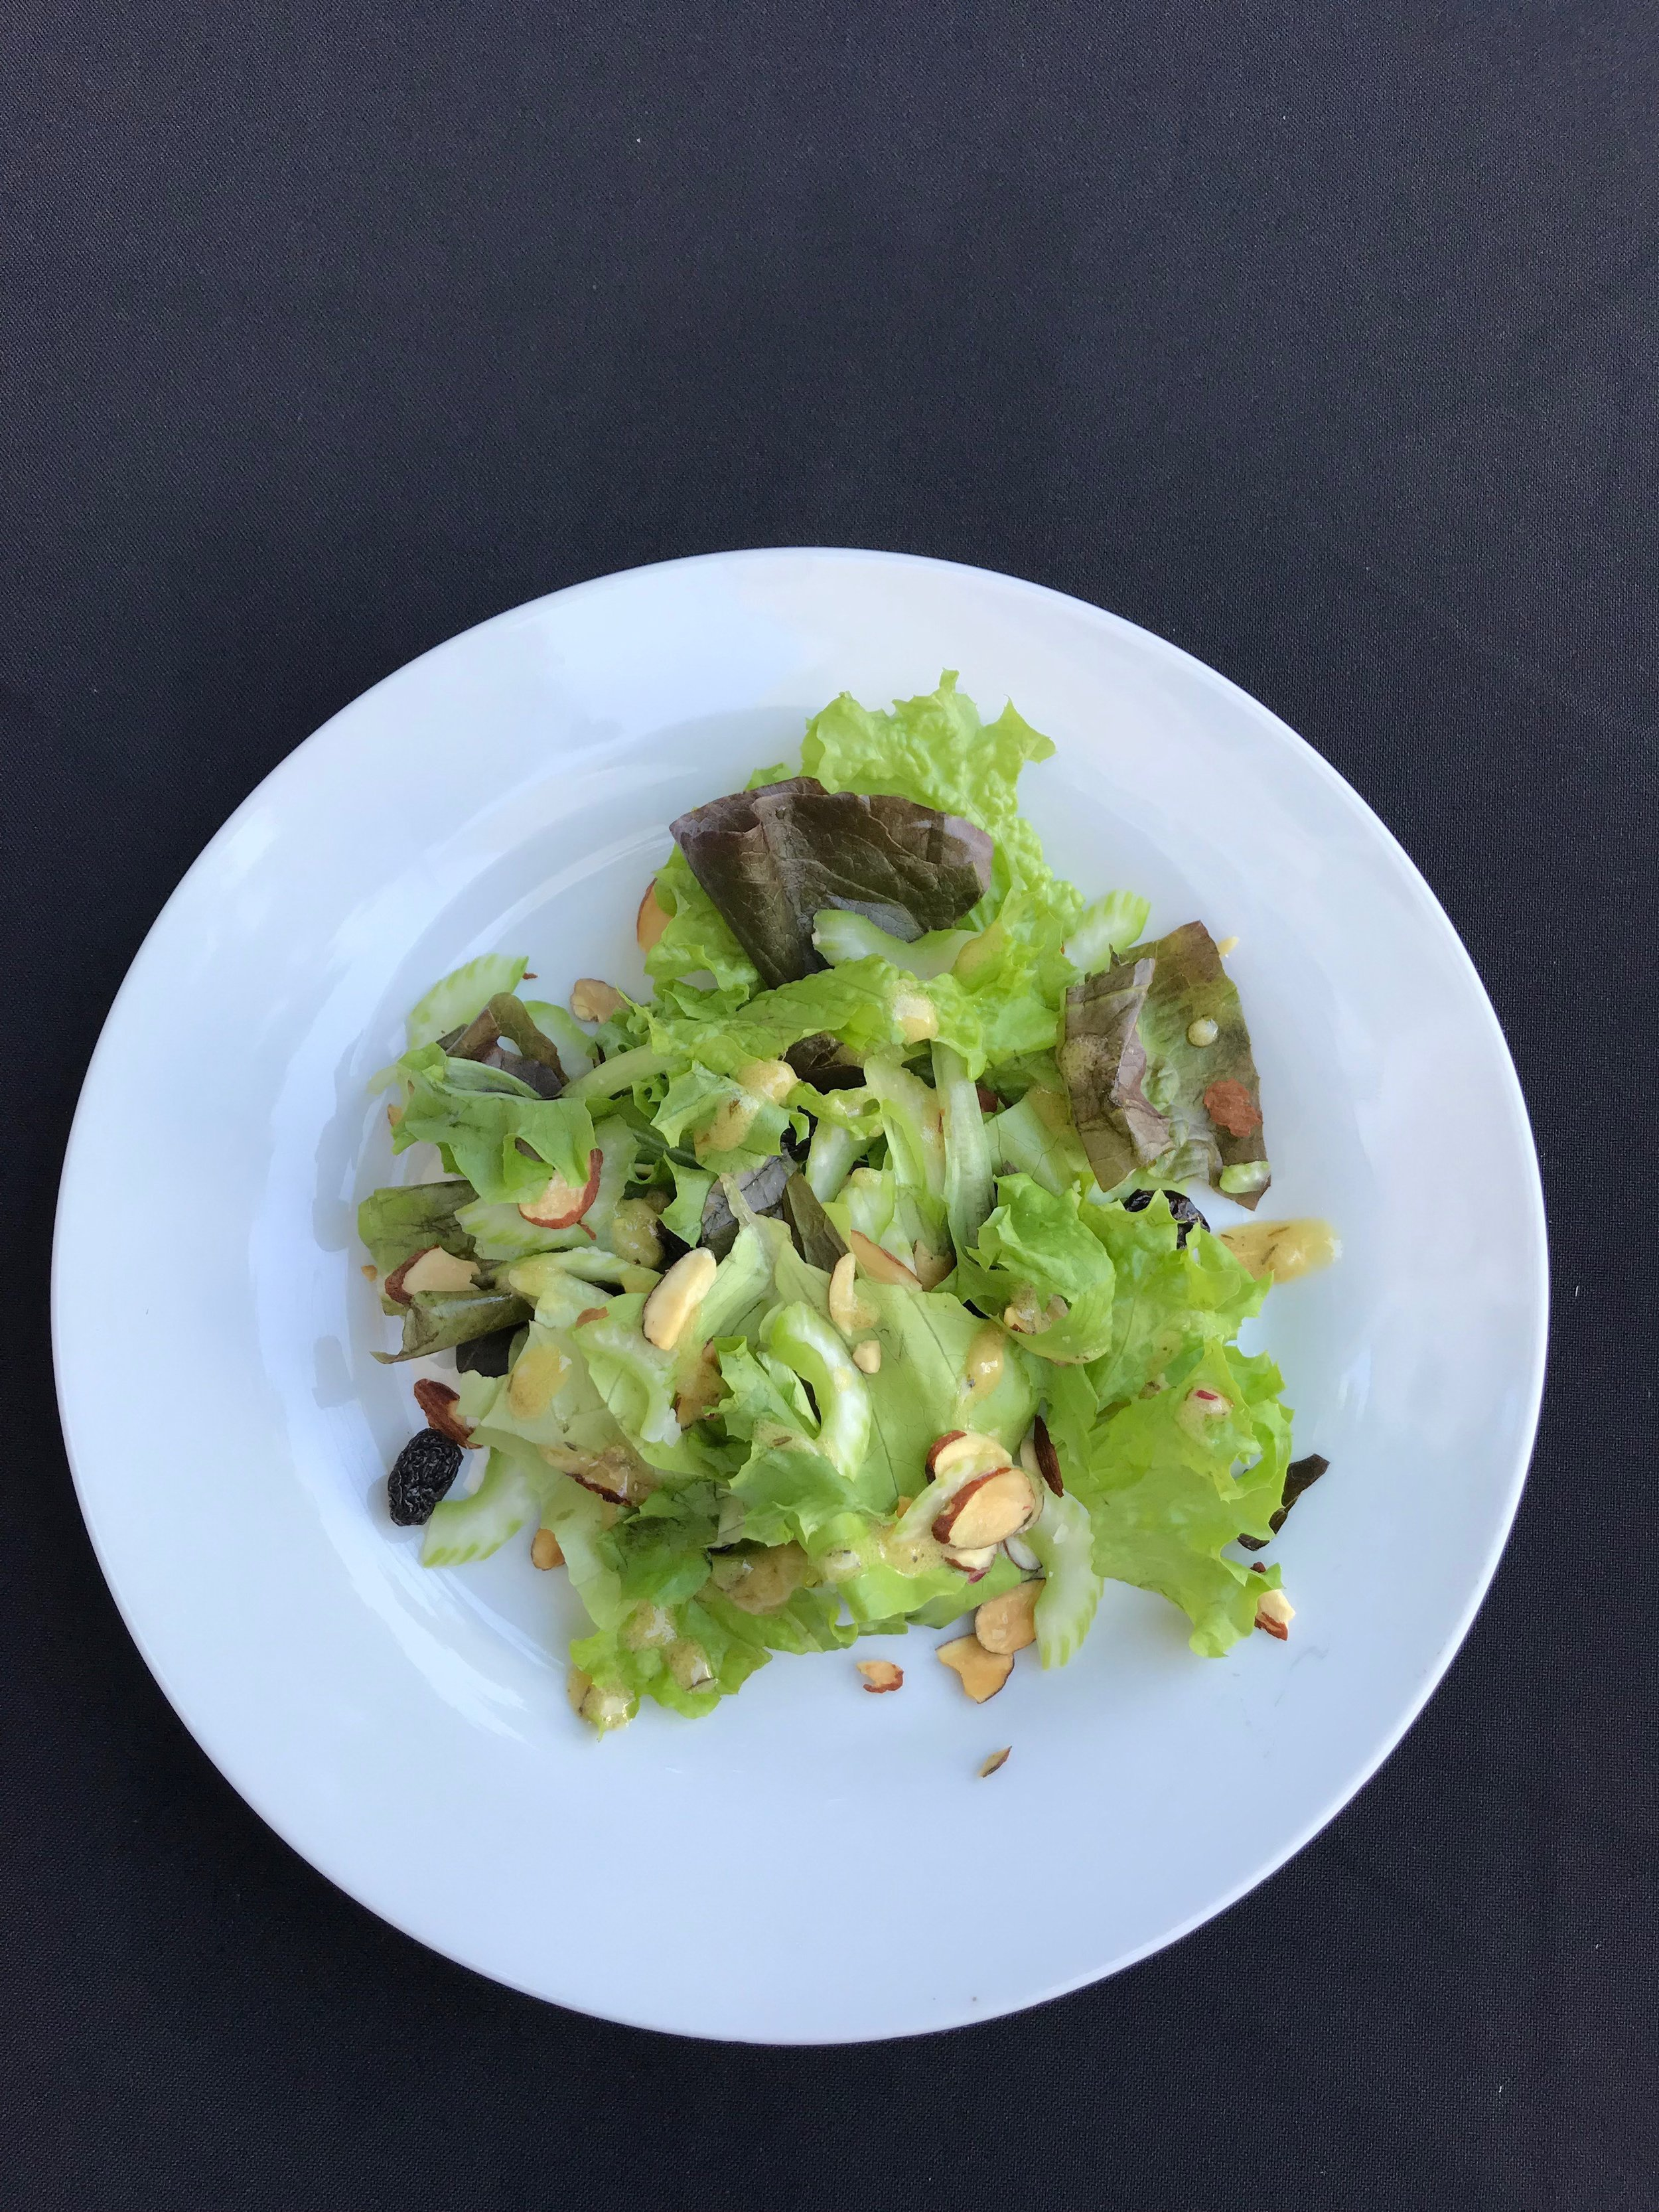 Baby-Greens Salad with Toasted Almonds - Mixed greens with shaved celery, toasted almonds, and raisins, dressed with Dijon whole mustard vinaigrette